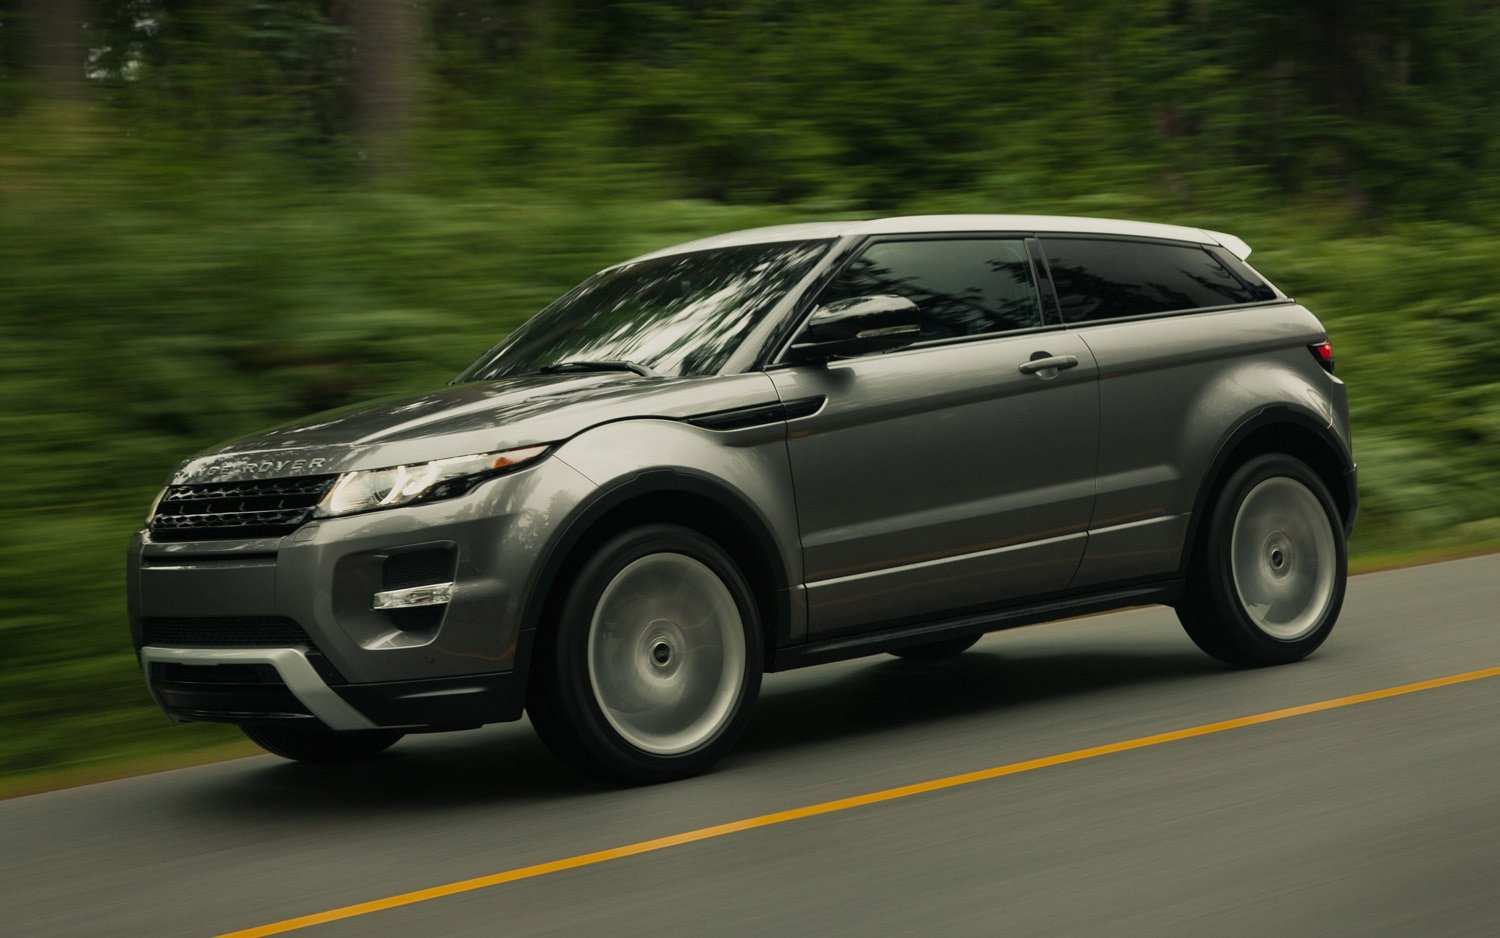 Used Cars Sarasota >> Used 2012 Land Rover Range Rover Evoque Review Edmunds | Autos Post